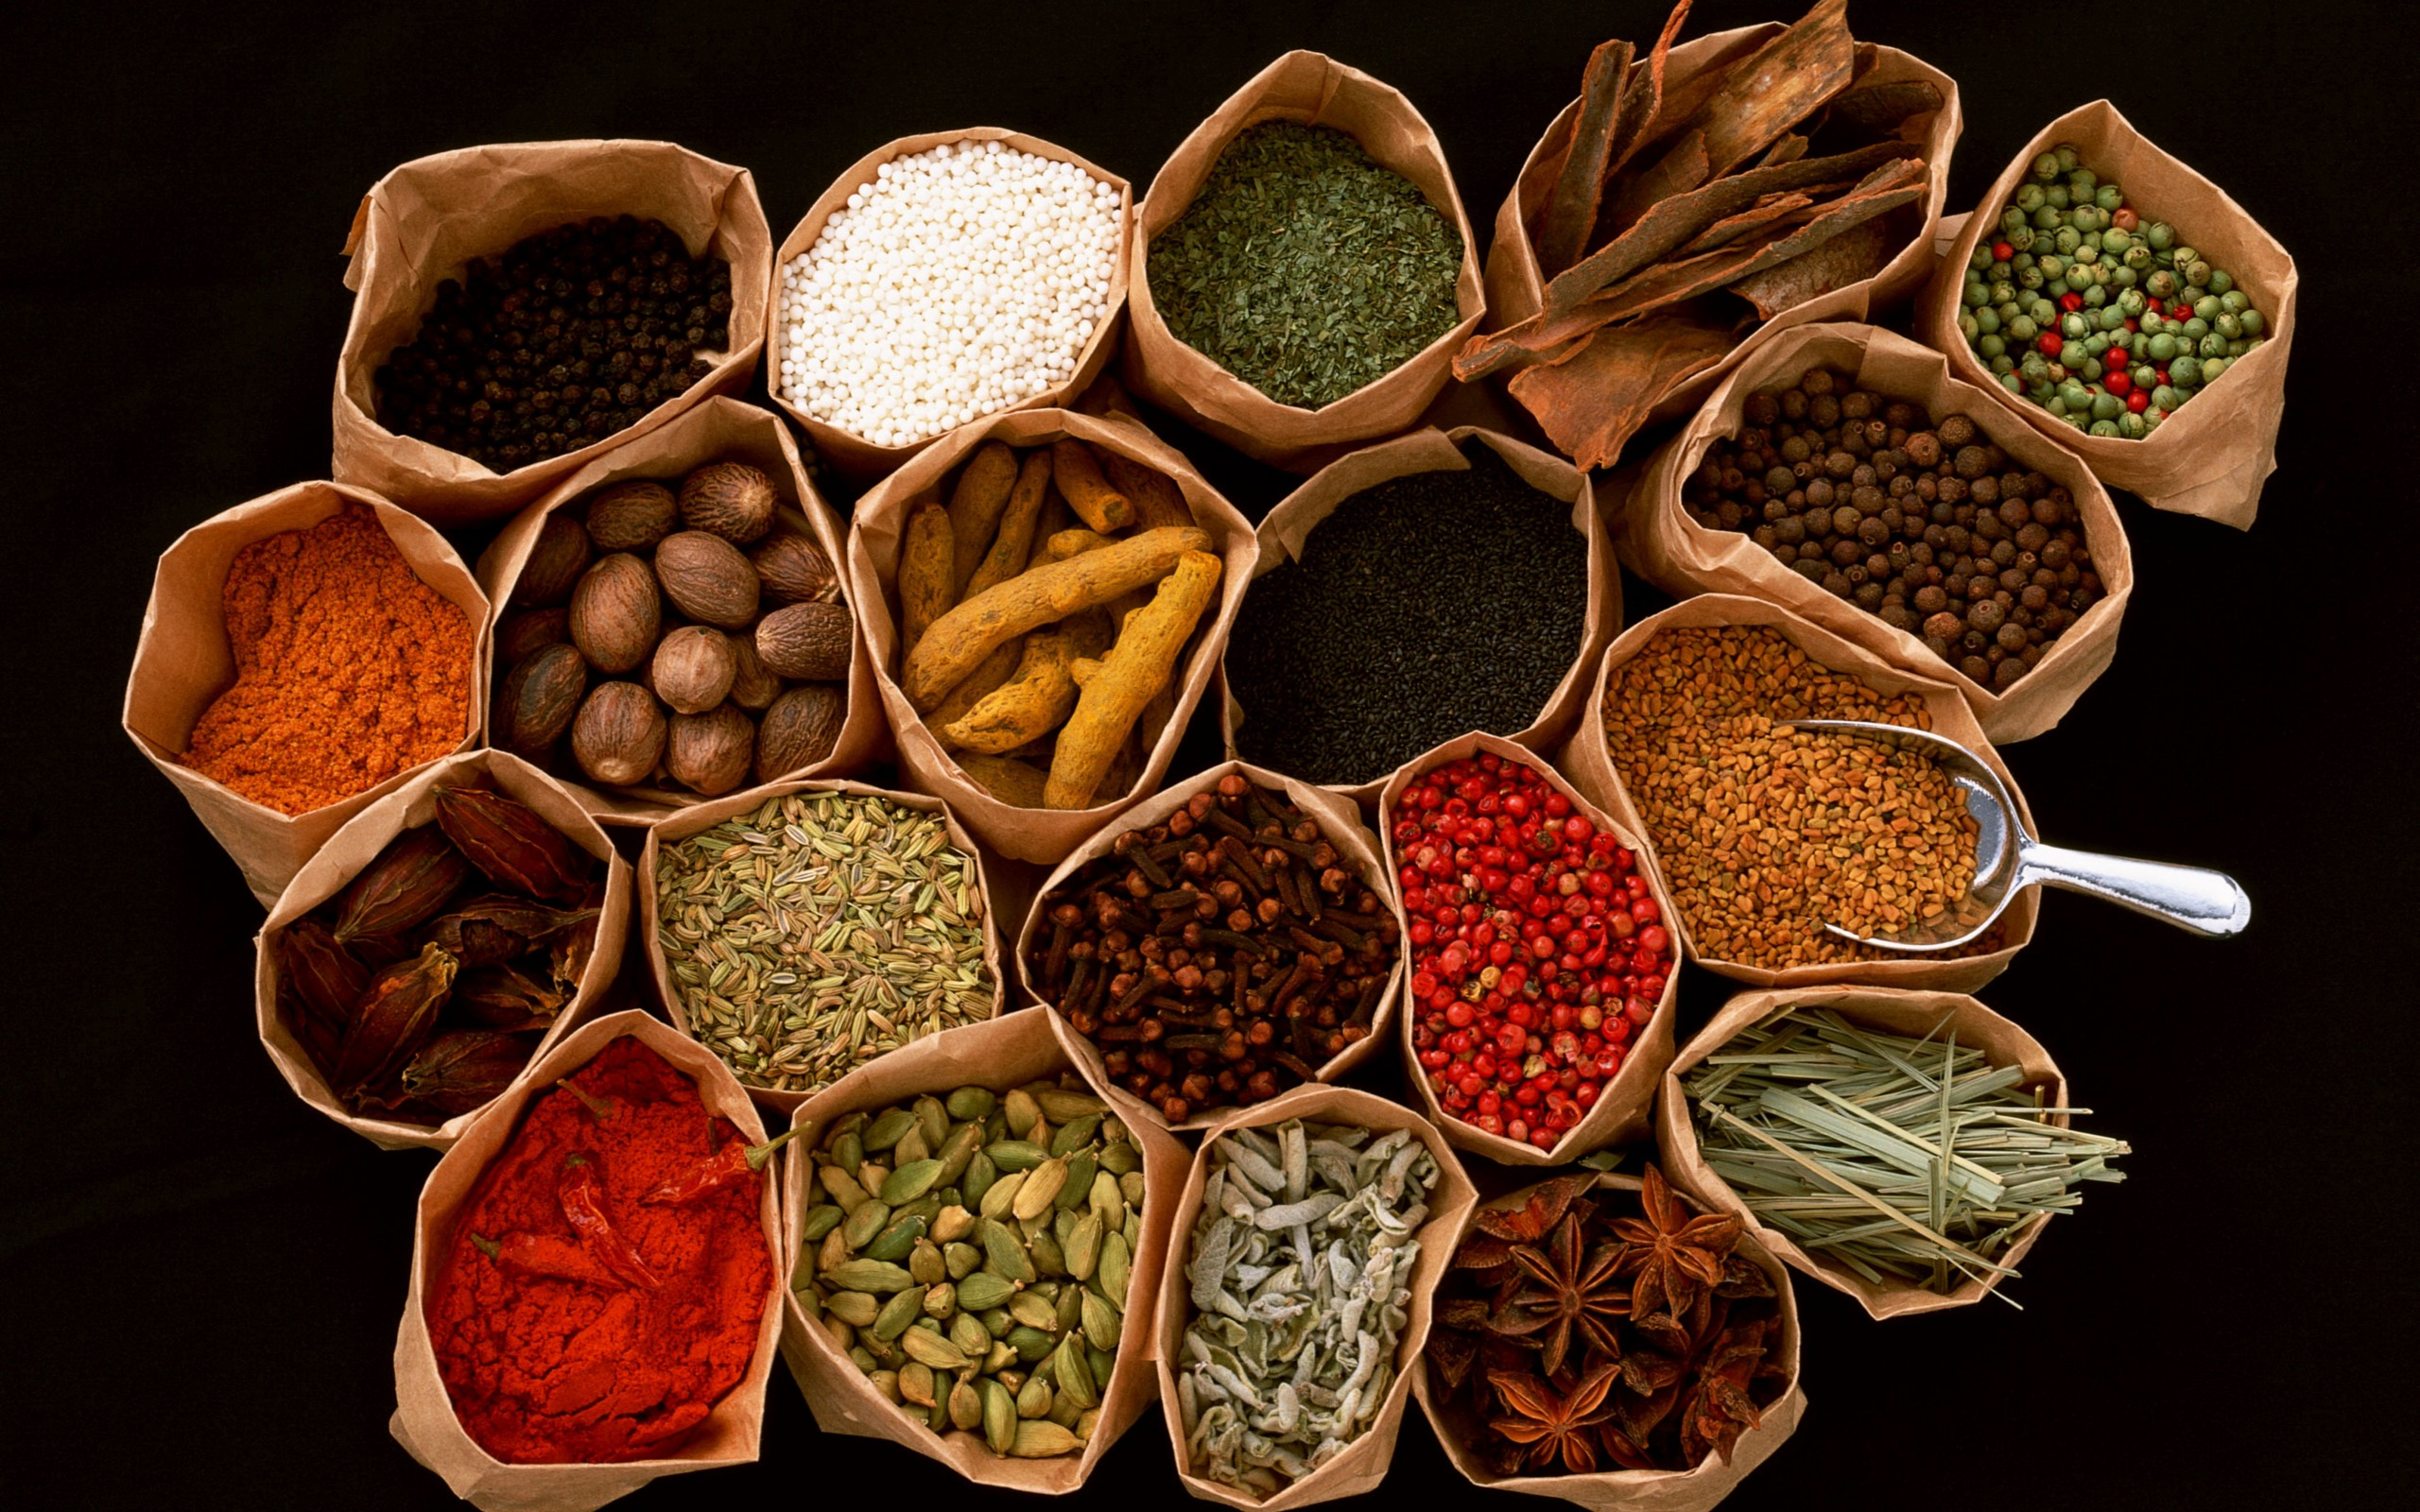 73 Herbs And Spices HD Wallpapers